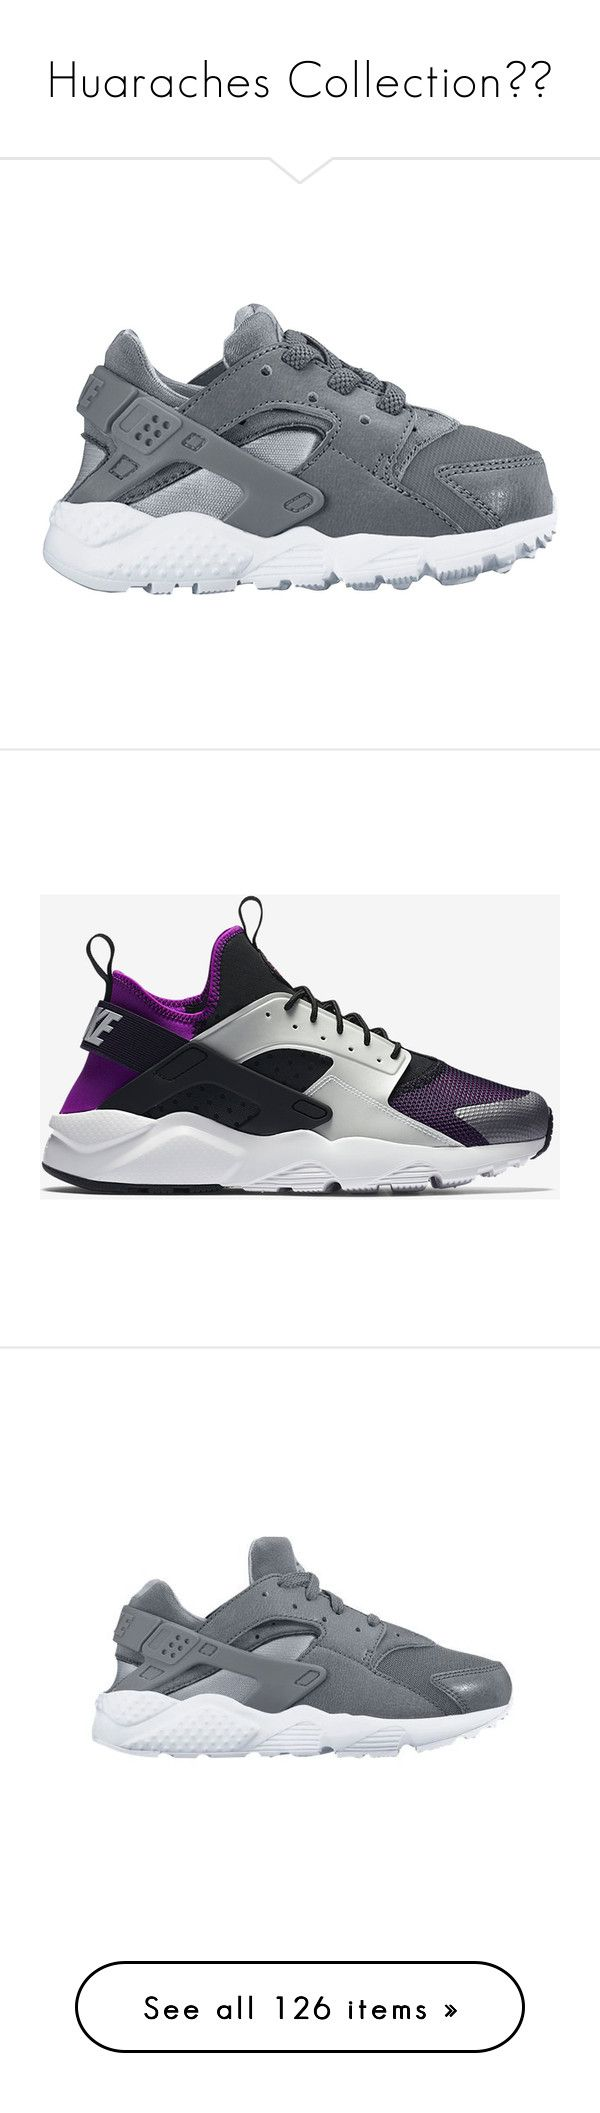 """Huaraches Collection💖💖"" by xxxfasiontrendsxxx on Polyvore featuring men's fashion, men's shoes, nike mens shoes, mens shoes, men's sneakers, sneakers, white, mens white slip on sneakers, mens running shoes and mens slip on shoes"